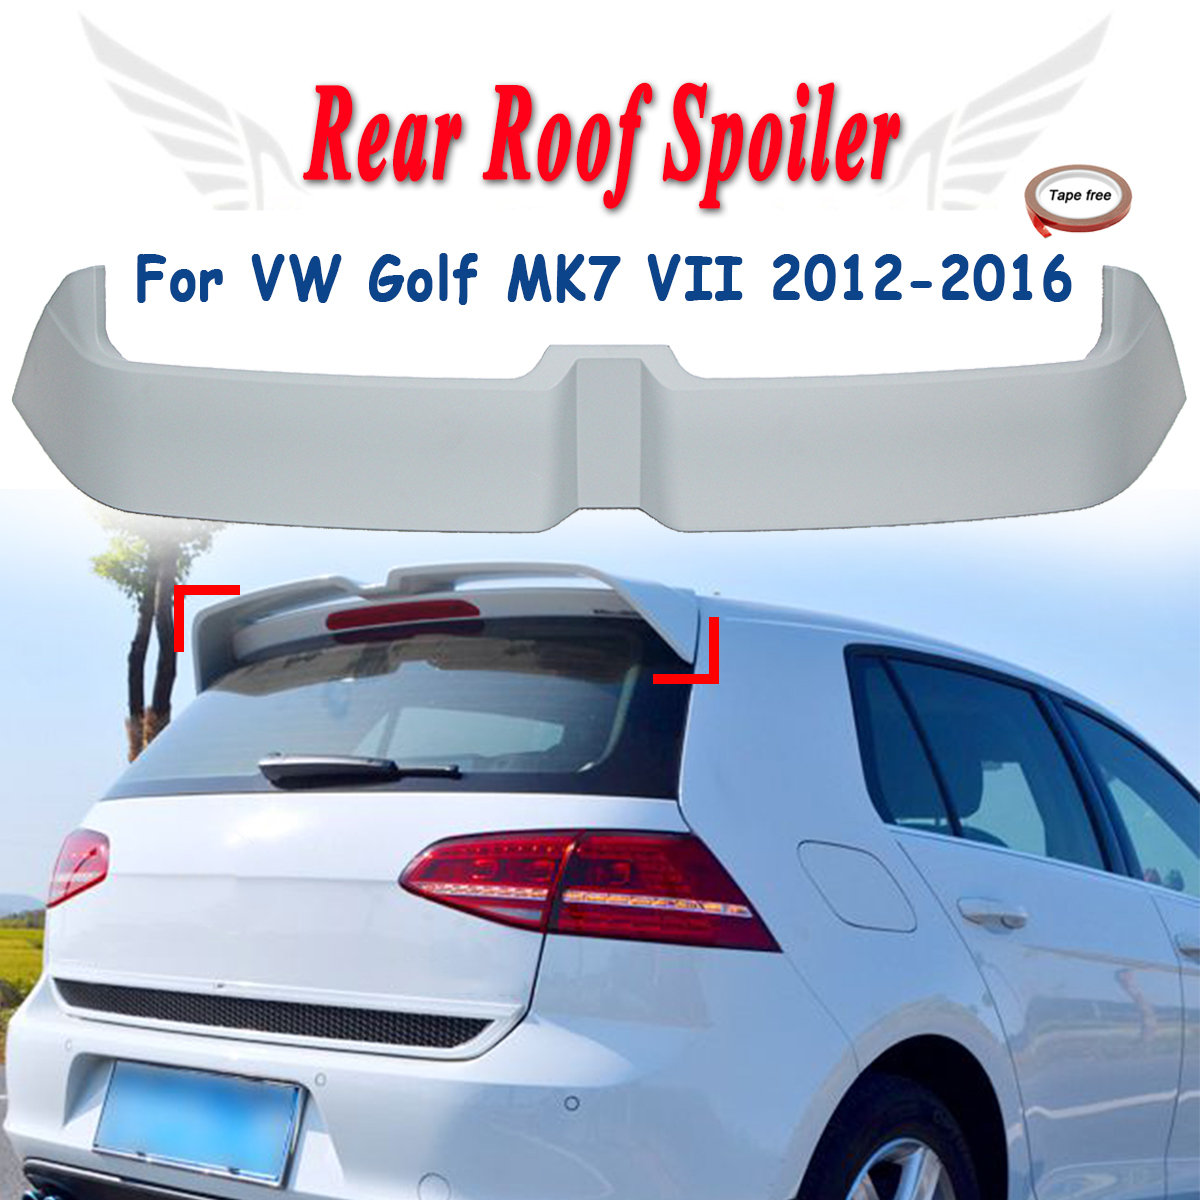 Unapinted Rear Trunk Roof Spoiler Boot Lip Wing Fits For VW Golf MK7 MK7.5 2012-2016 Window Tail Wings FRPUnapinted Rear Trunk Roof Spoiler Boot Lip Wing Fits For VW Golf MK7 MK7.5 2012-2016 Window Tail Wings FRP